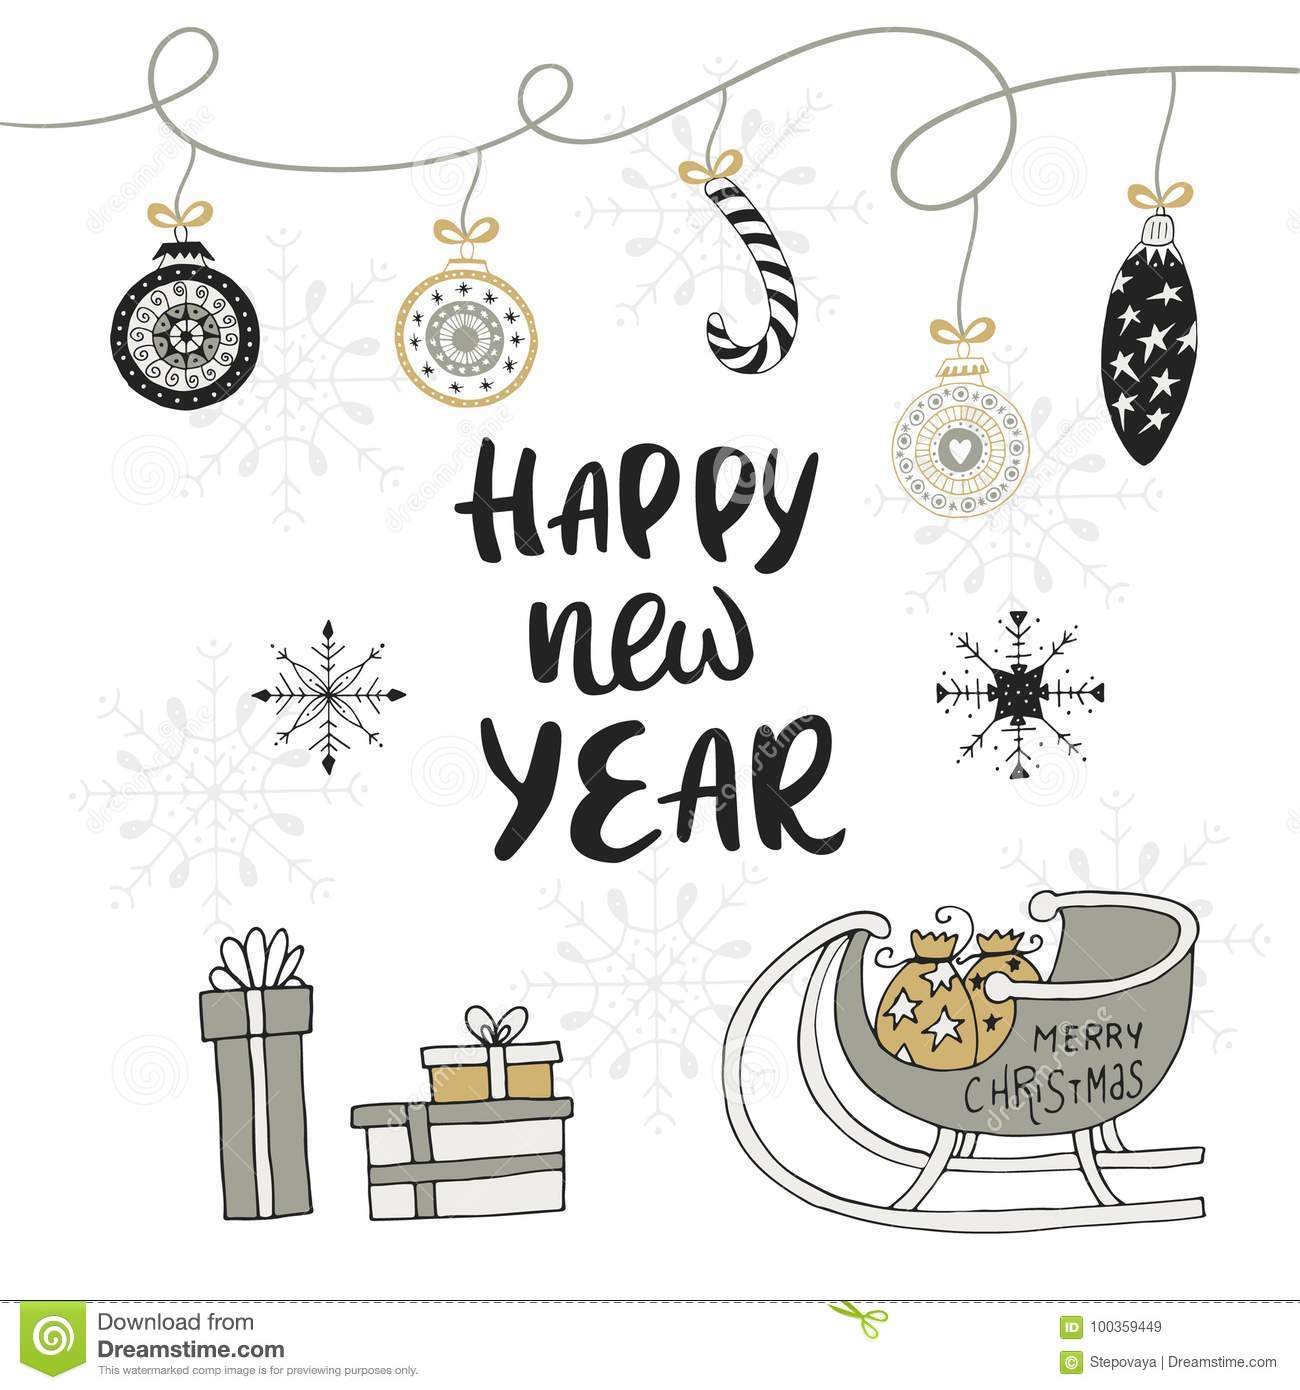 Happy New Year Hand Drawn Christmas Card With Lettering